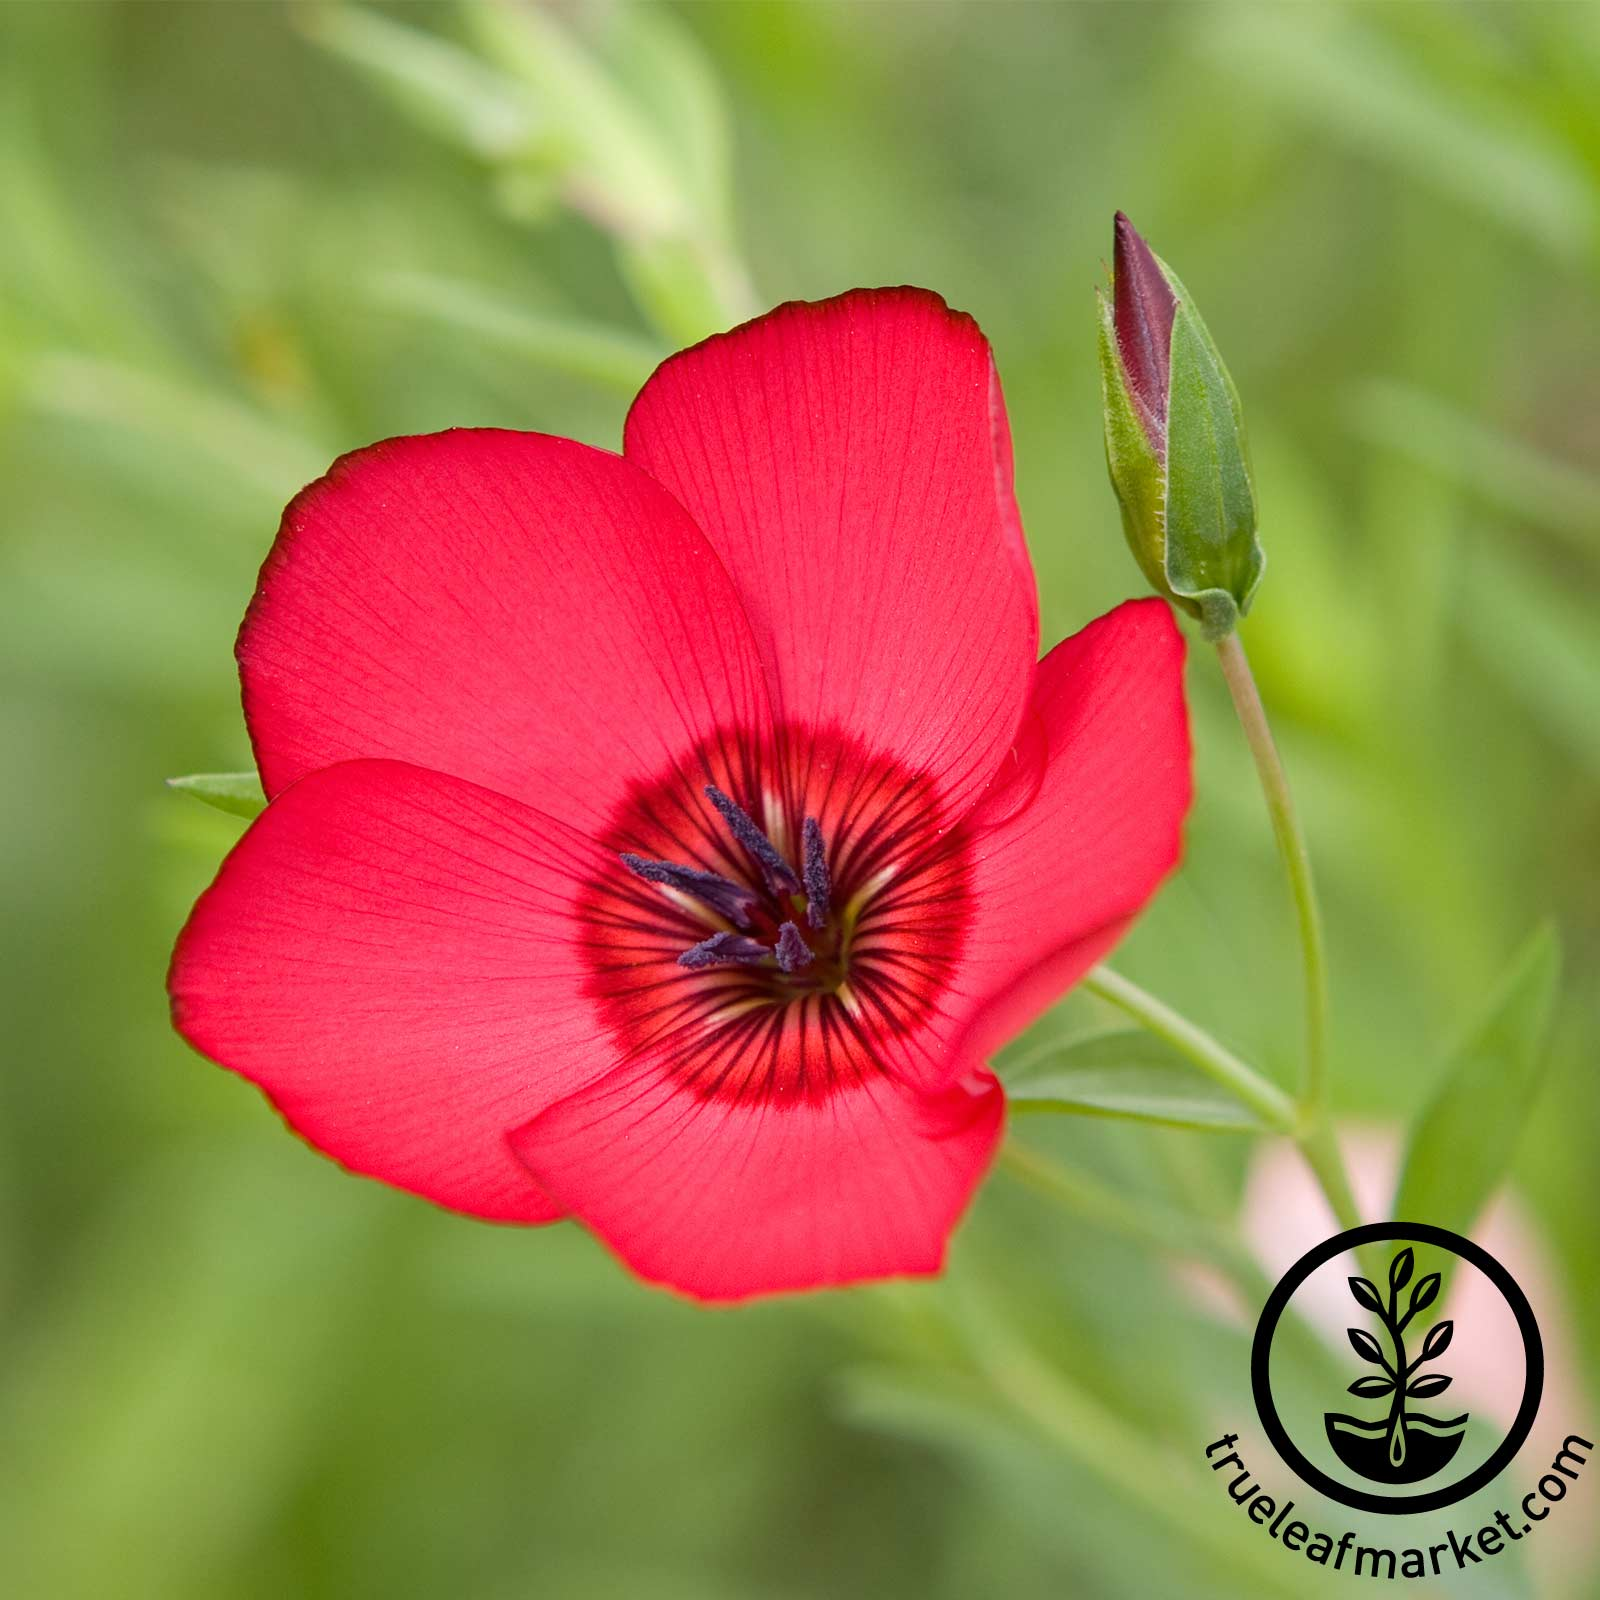 Scarlet Flax Flower Seed